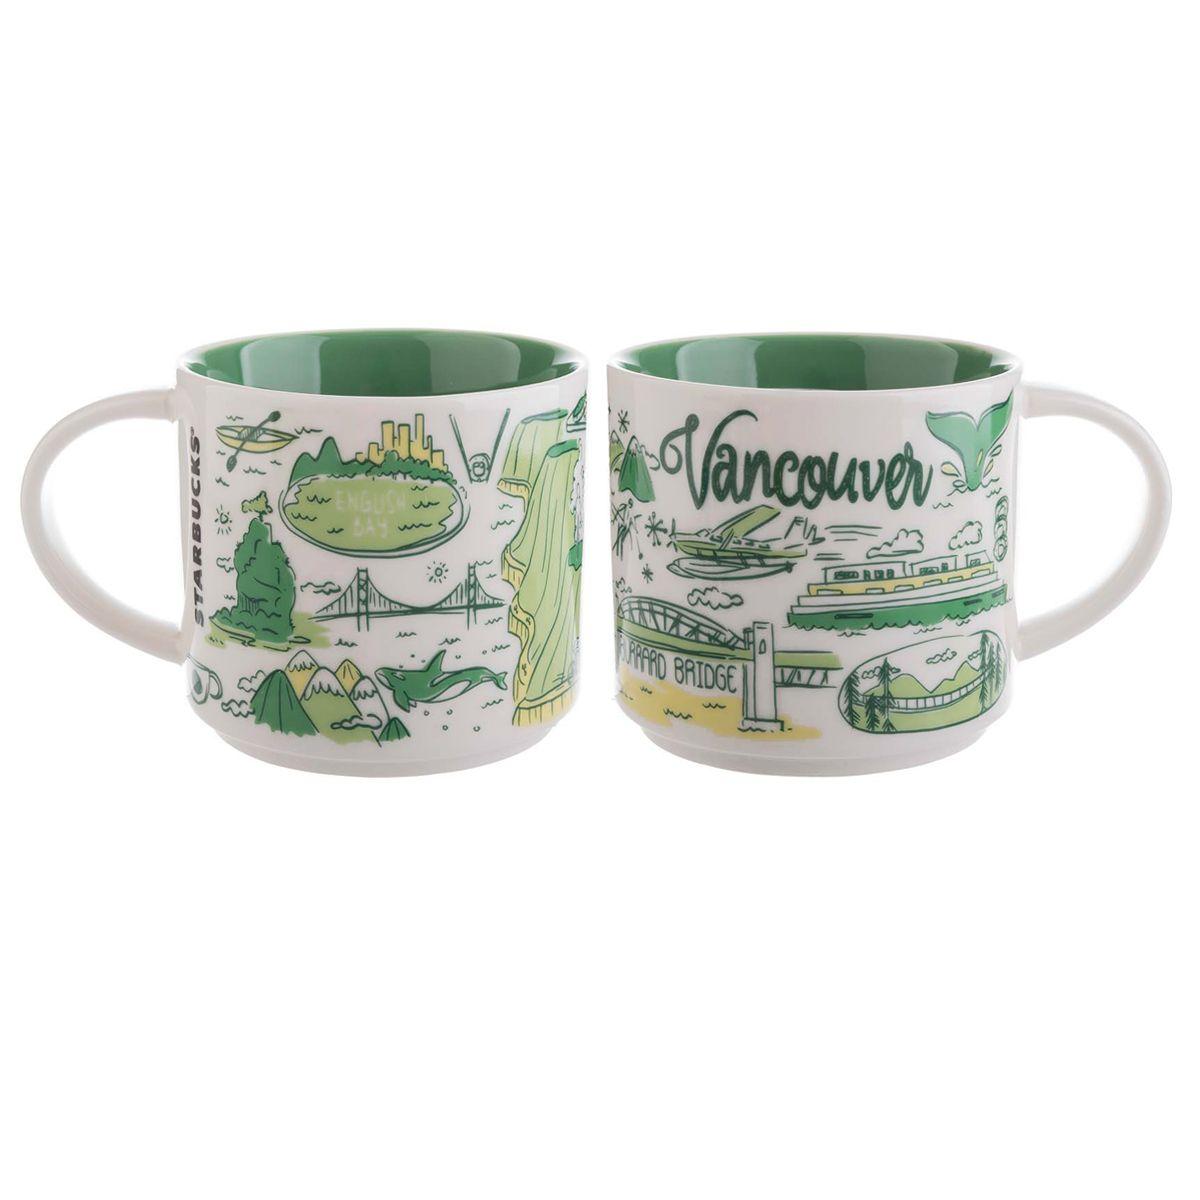 Vancouver A Collectible Mug From The Starbucks Been There Collection